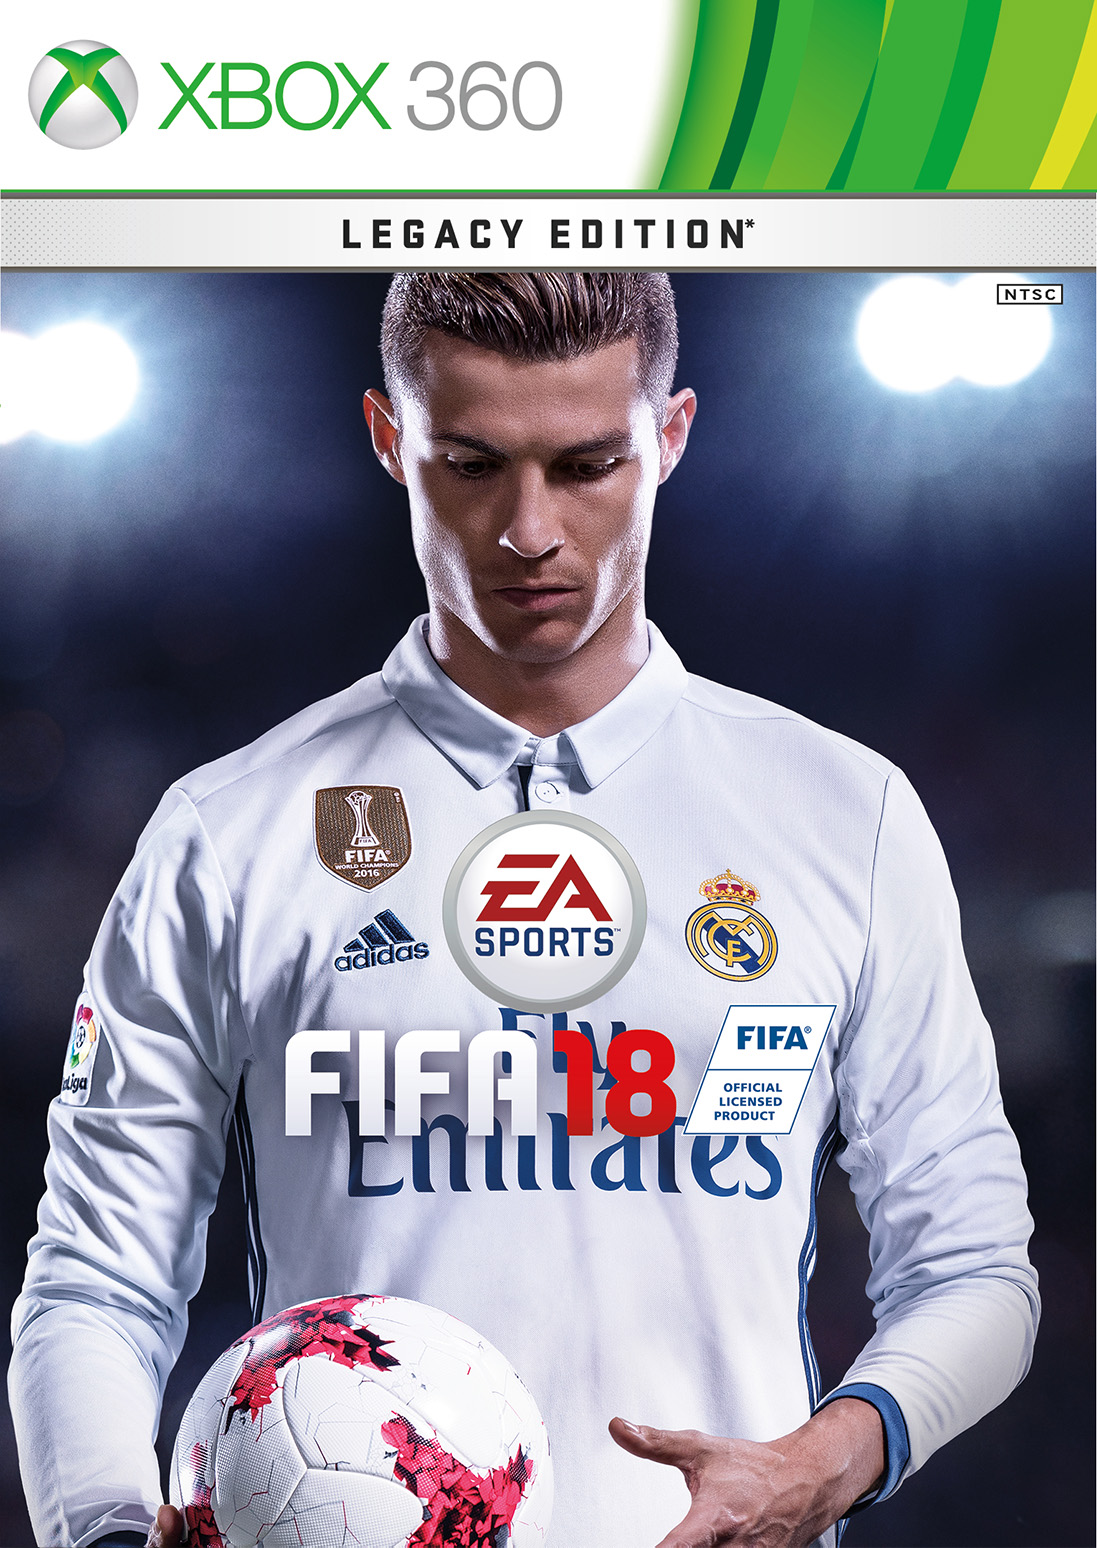 FIFA 18 for Xbox 360 Deal